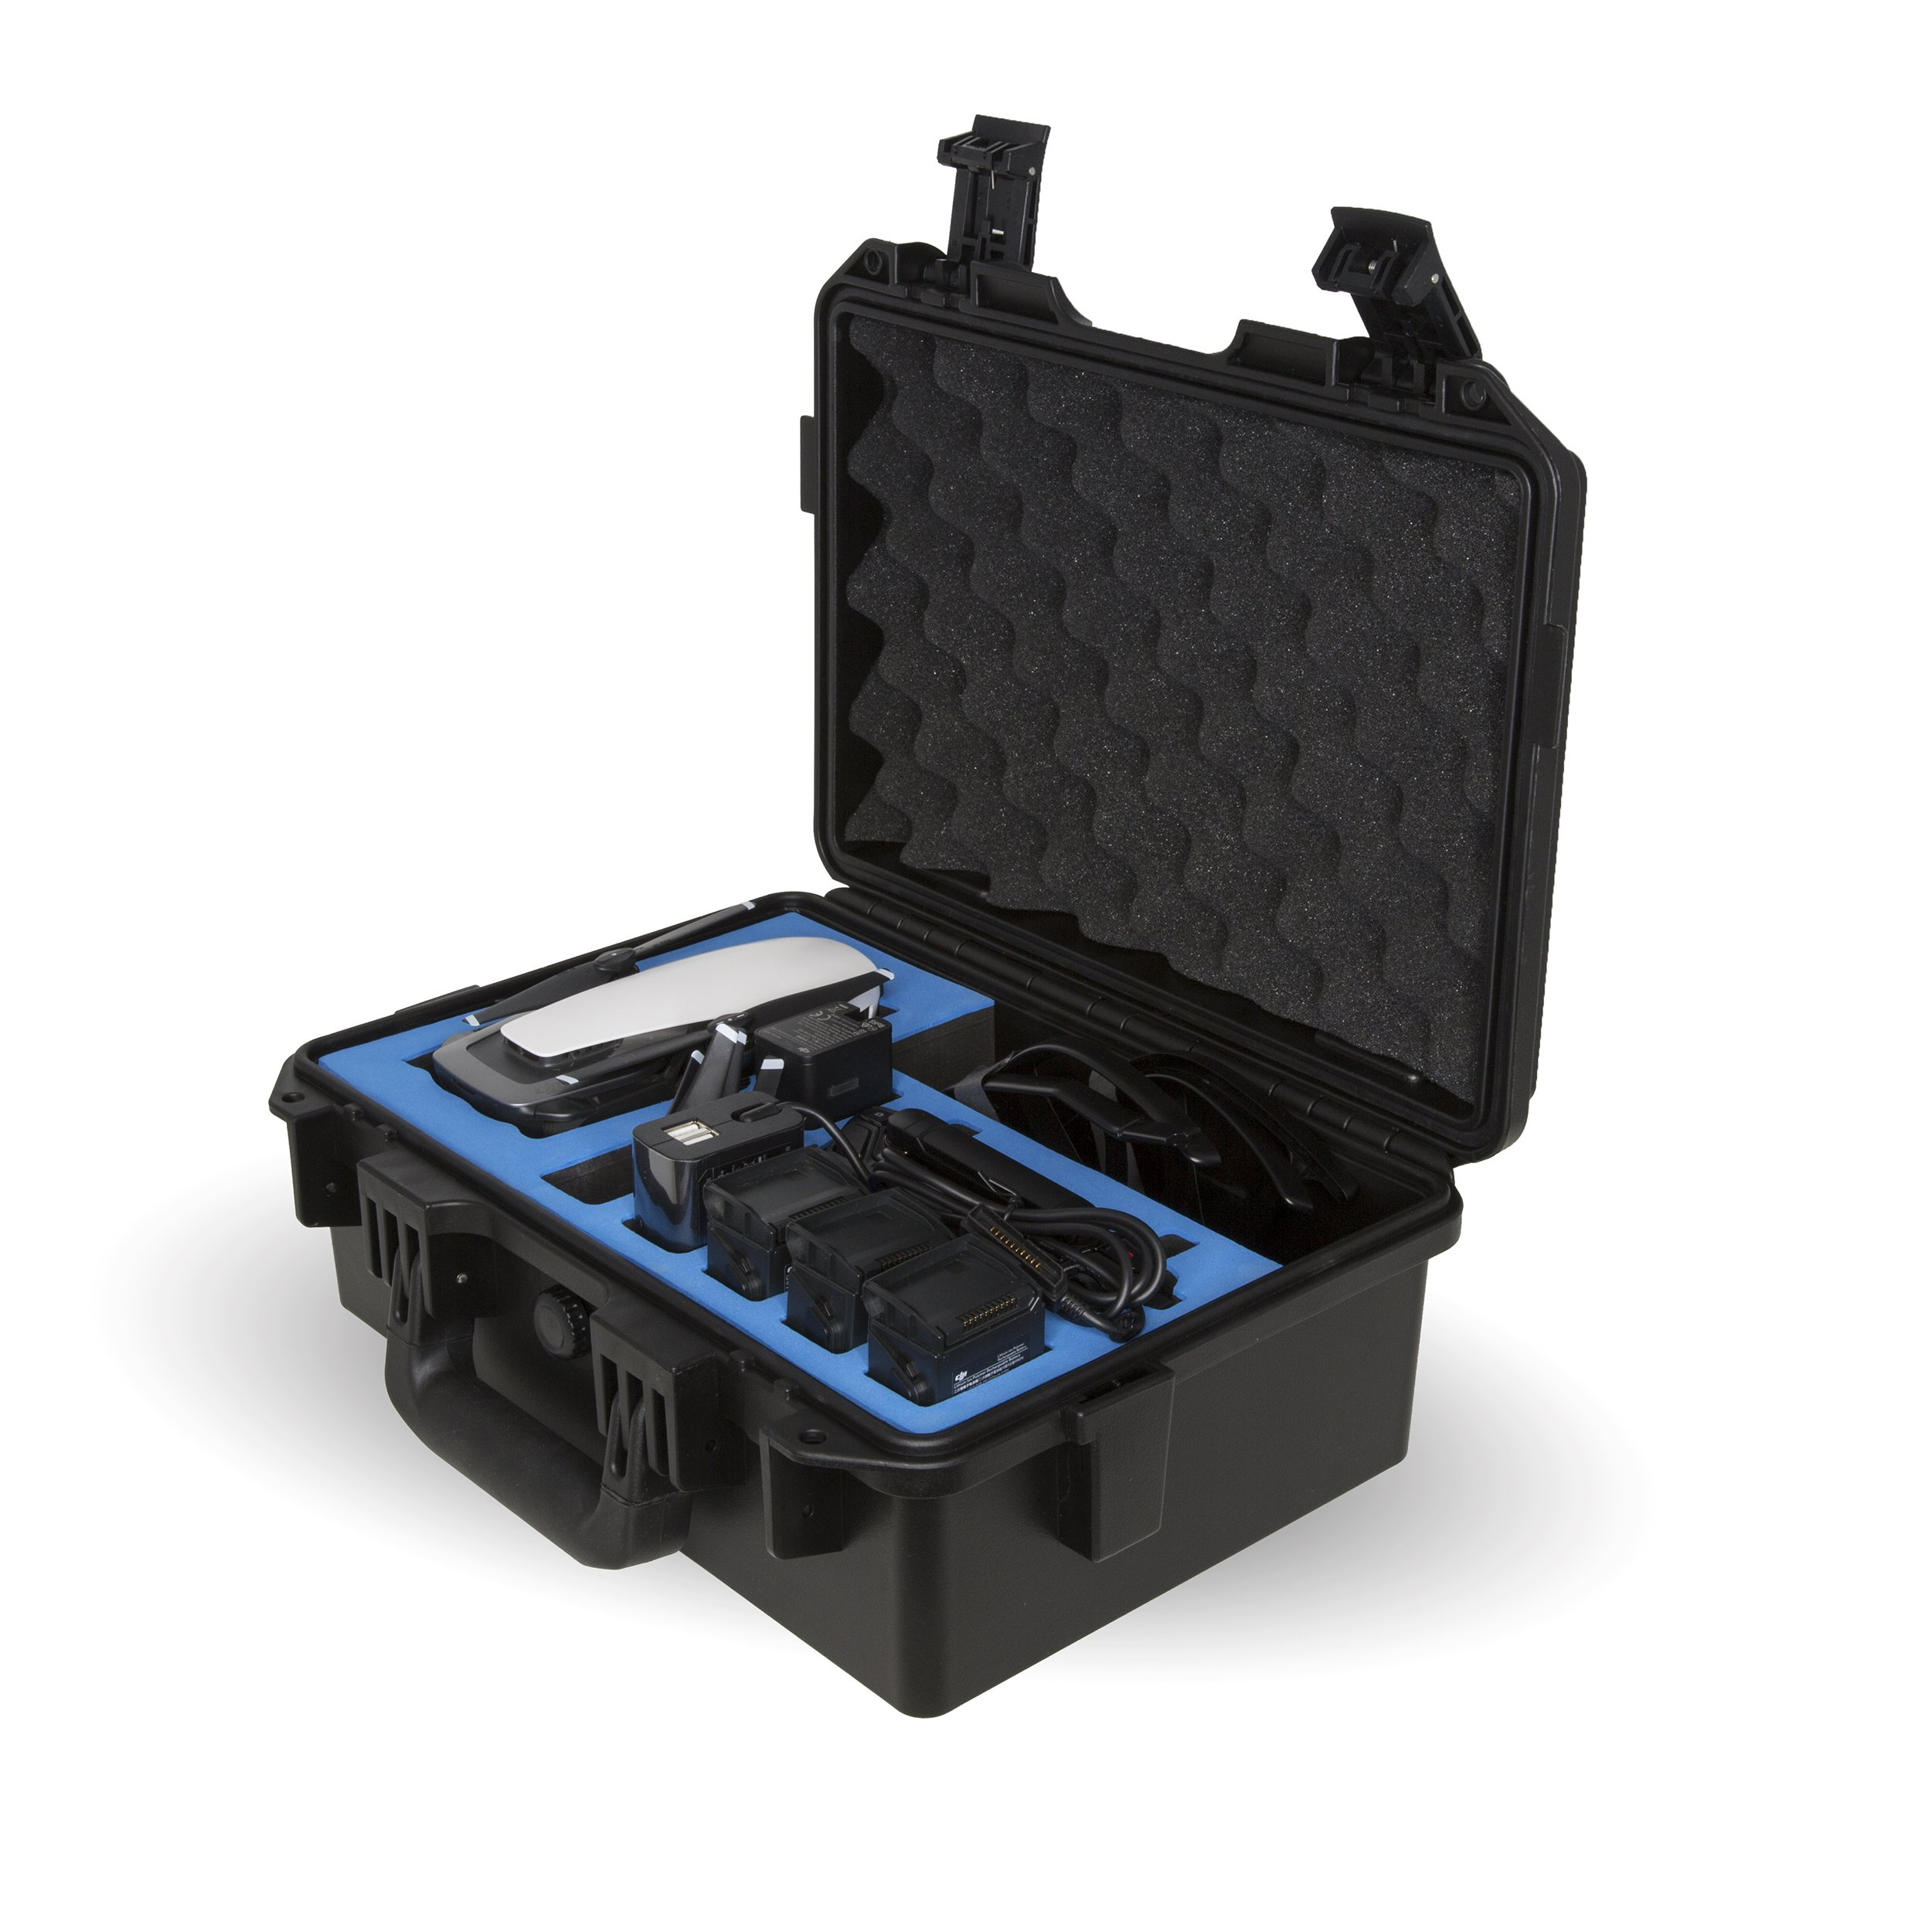 Ultimaxx Waterproof Rugged Compact Travel Storage Hard Case for DJI Mavic Air Drone and Additional Accessories